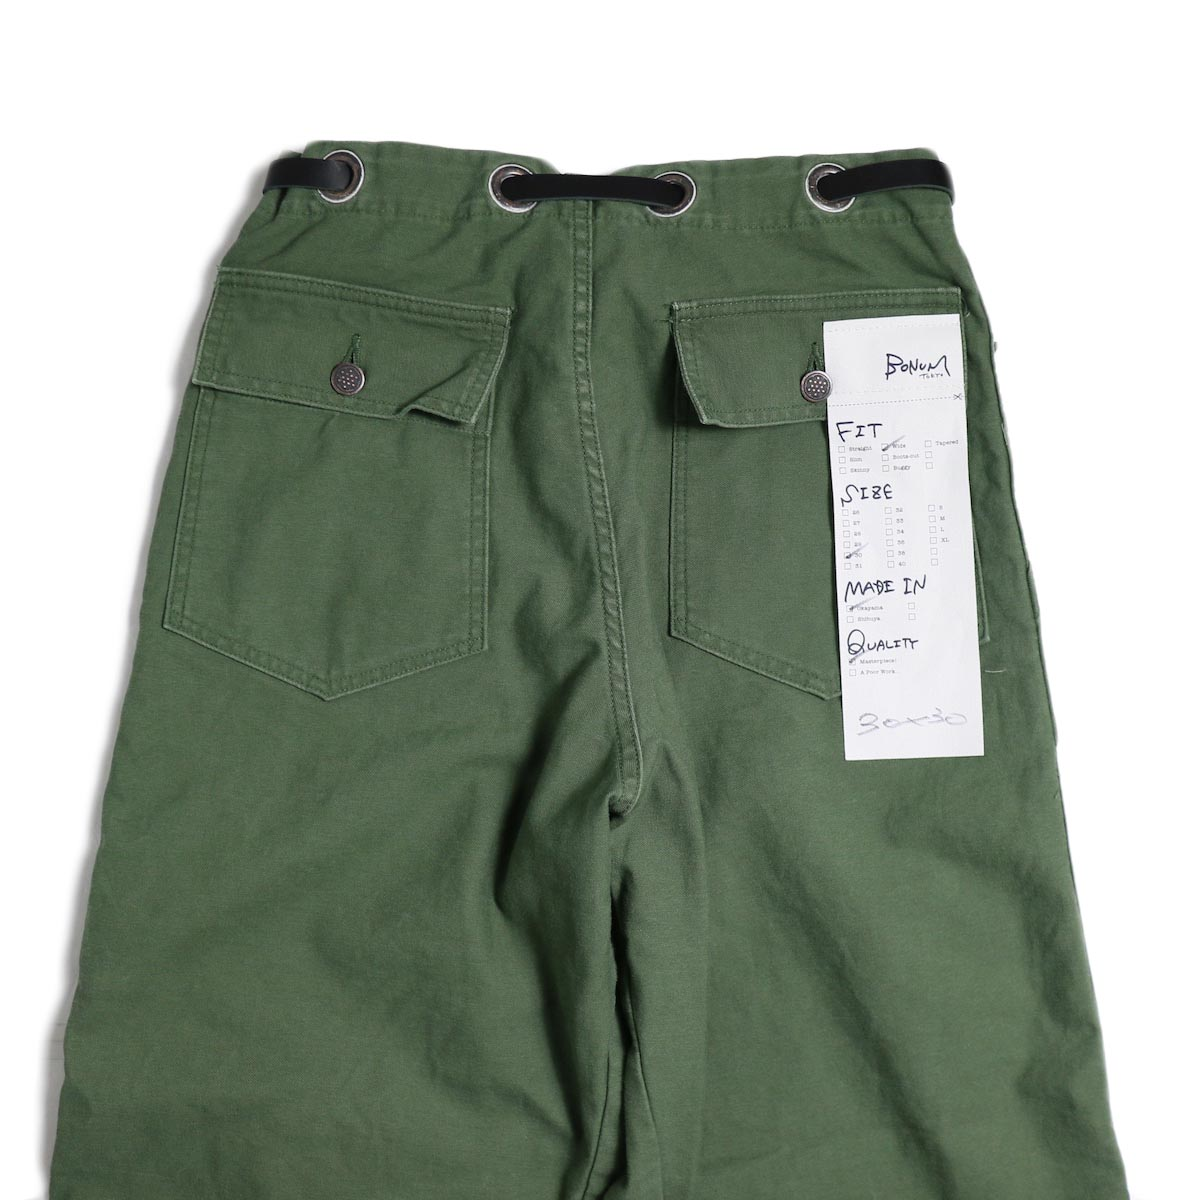 BONUM / OR DEADSTOCK BELTED ARMY PTS ヒップポケット